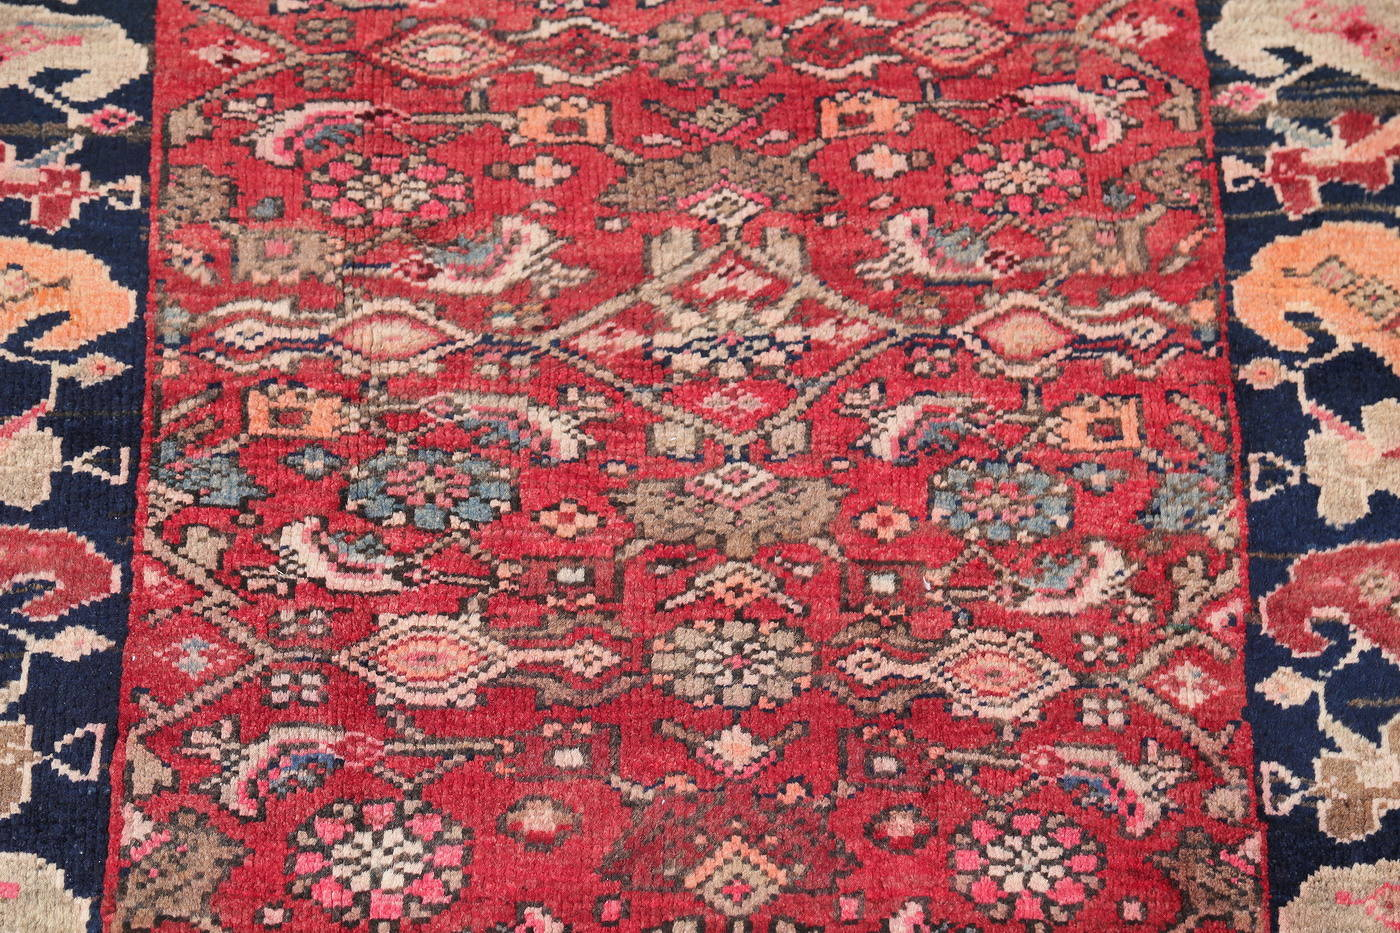 Hand-Knotted Red Geometric Heriz Persian Area Rug Wool 4x5 image 4